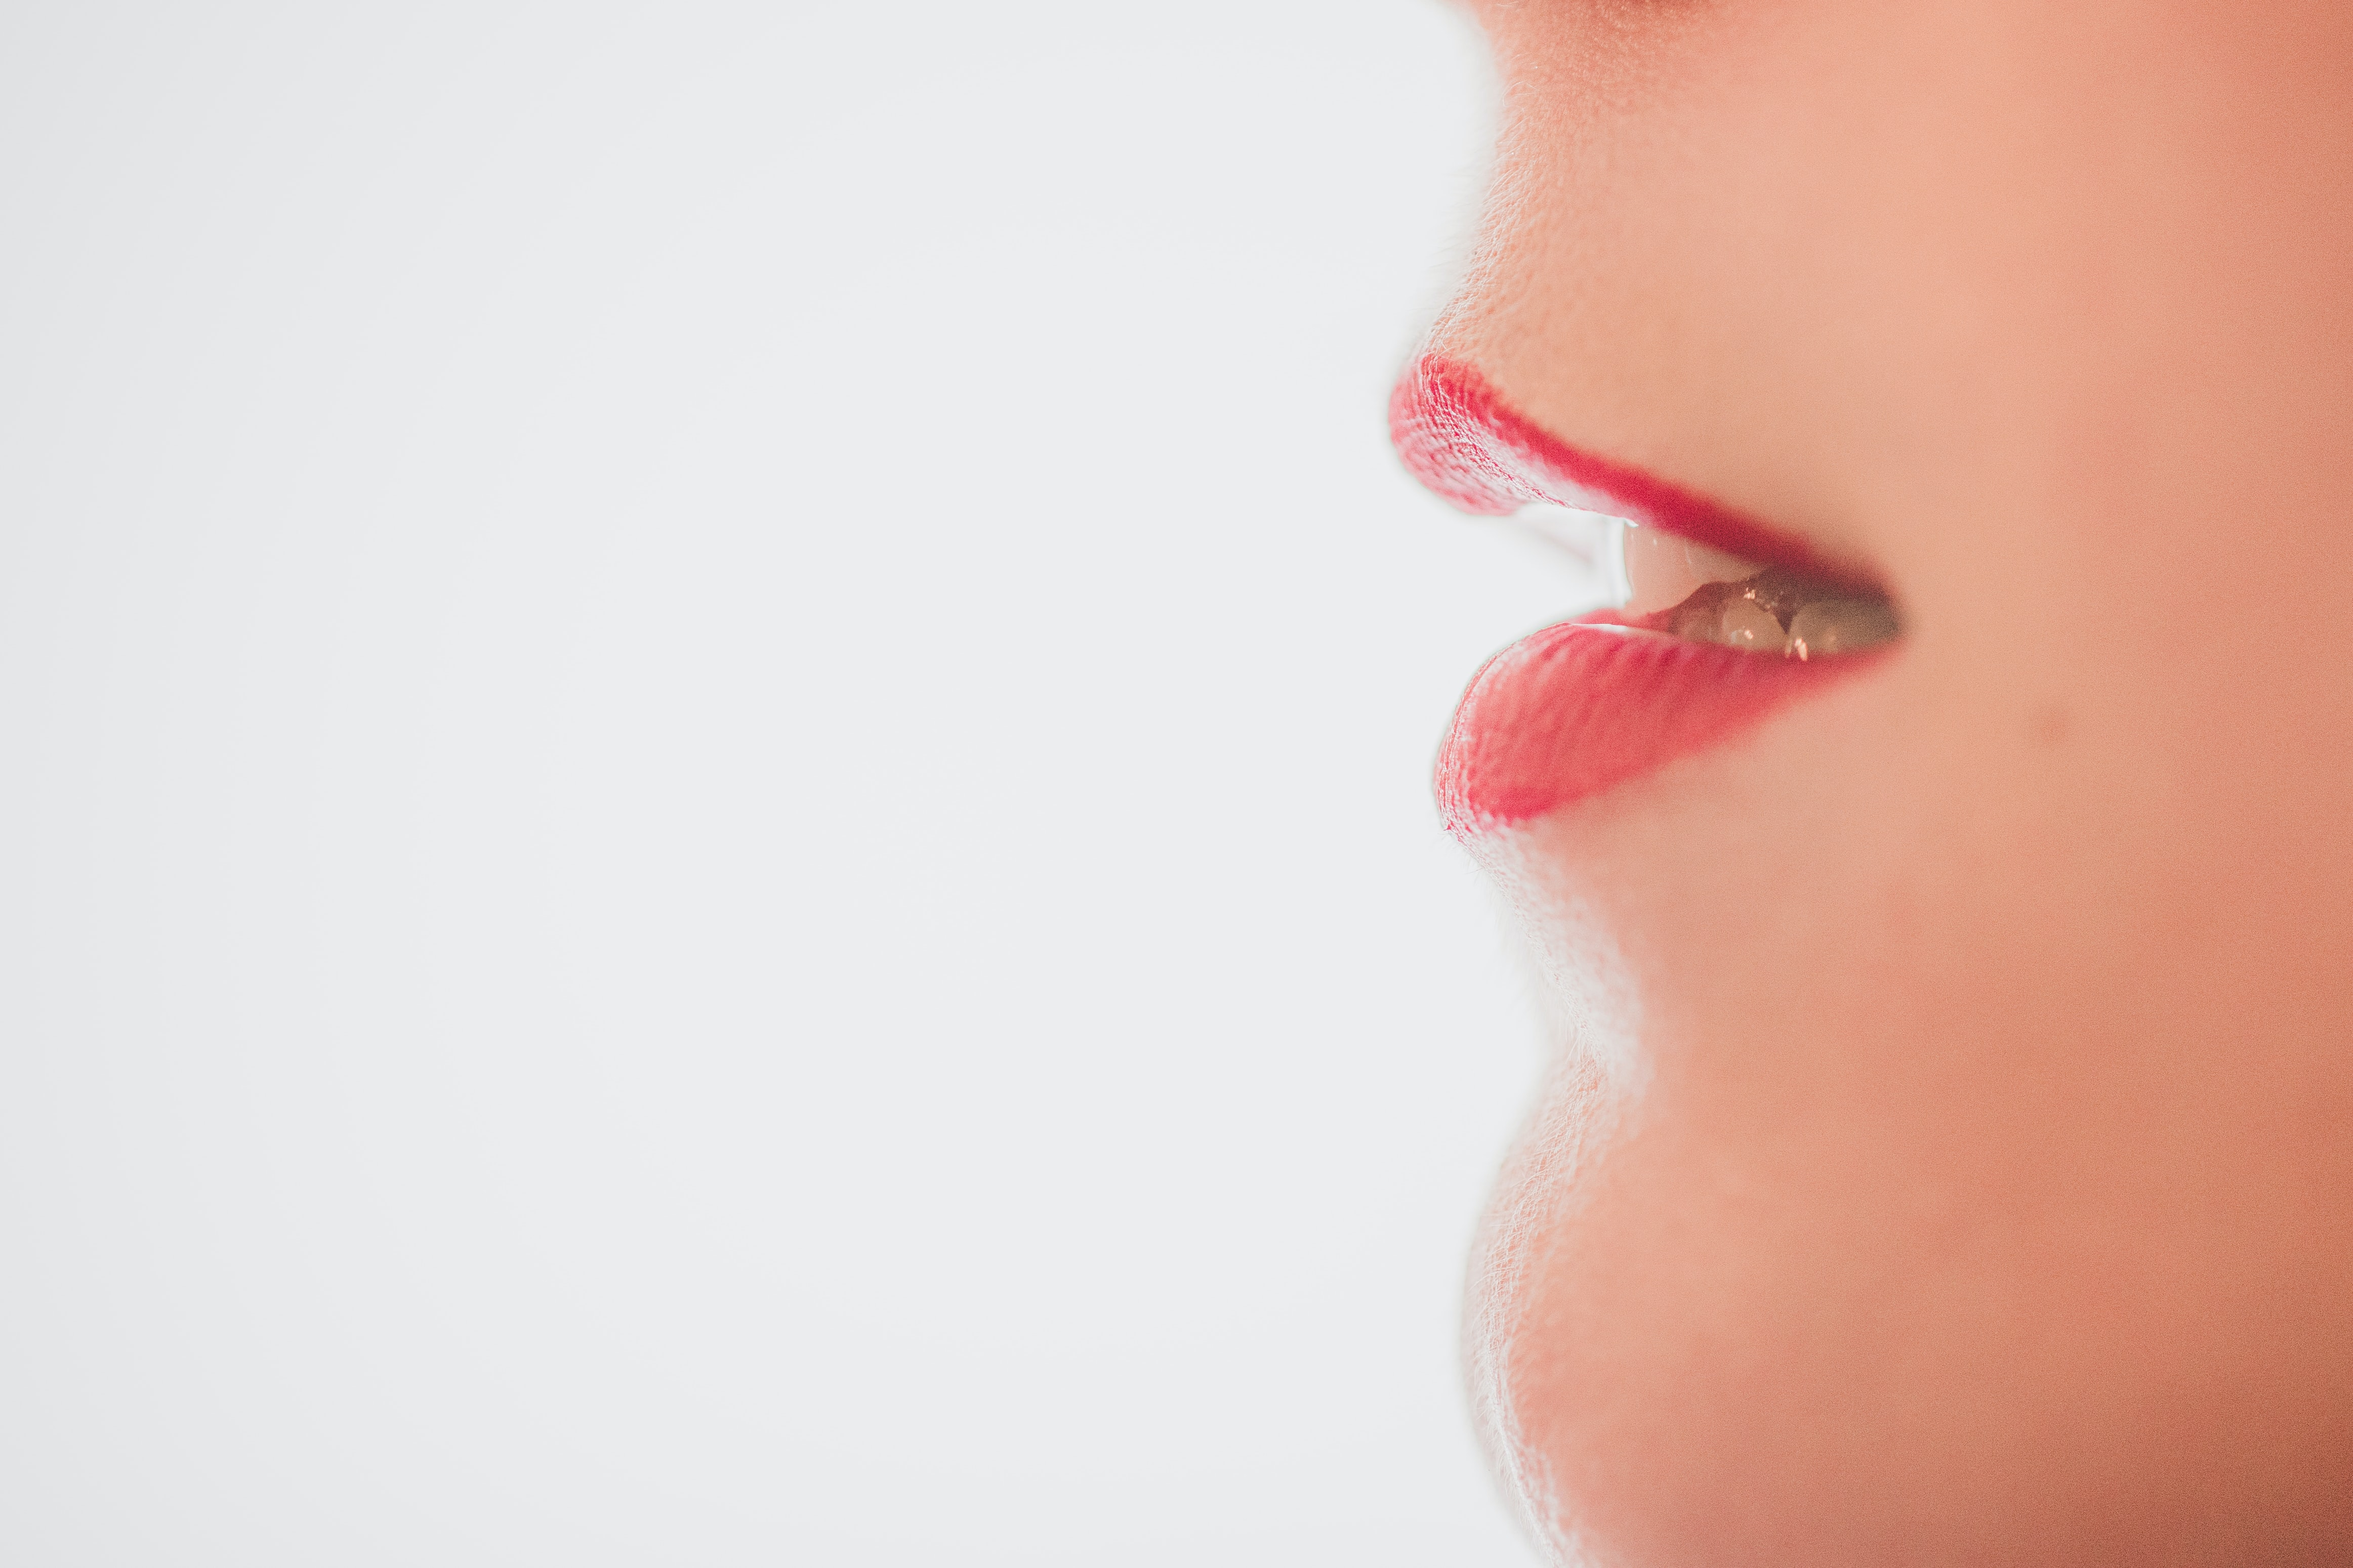 A woman's mouth. Liz Drury Voiceovers